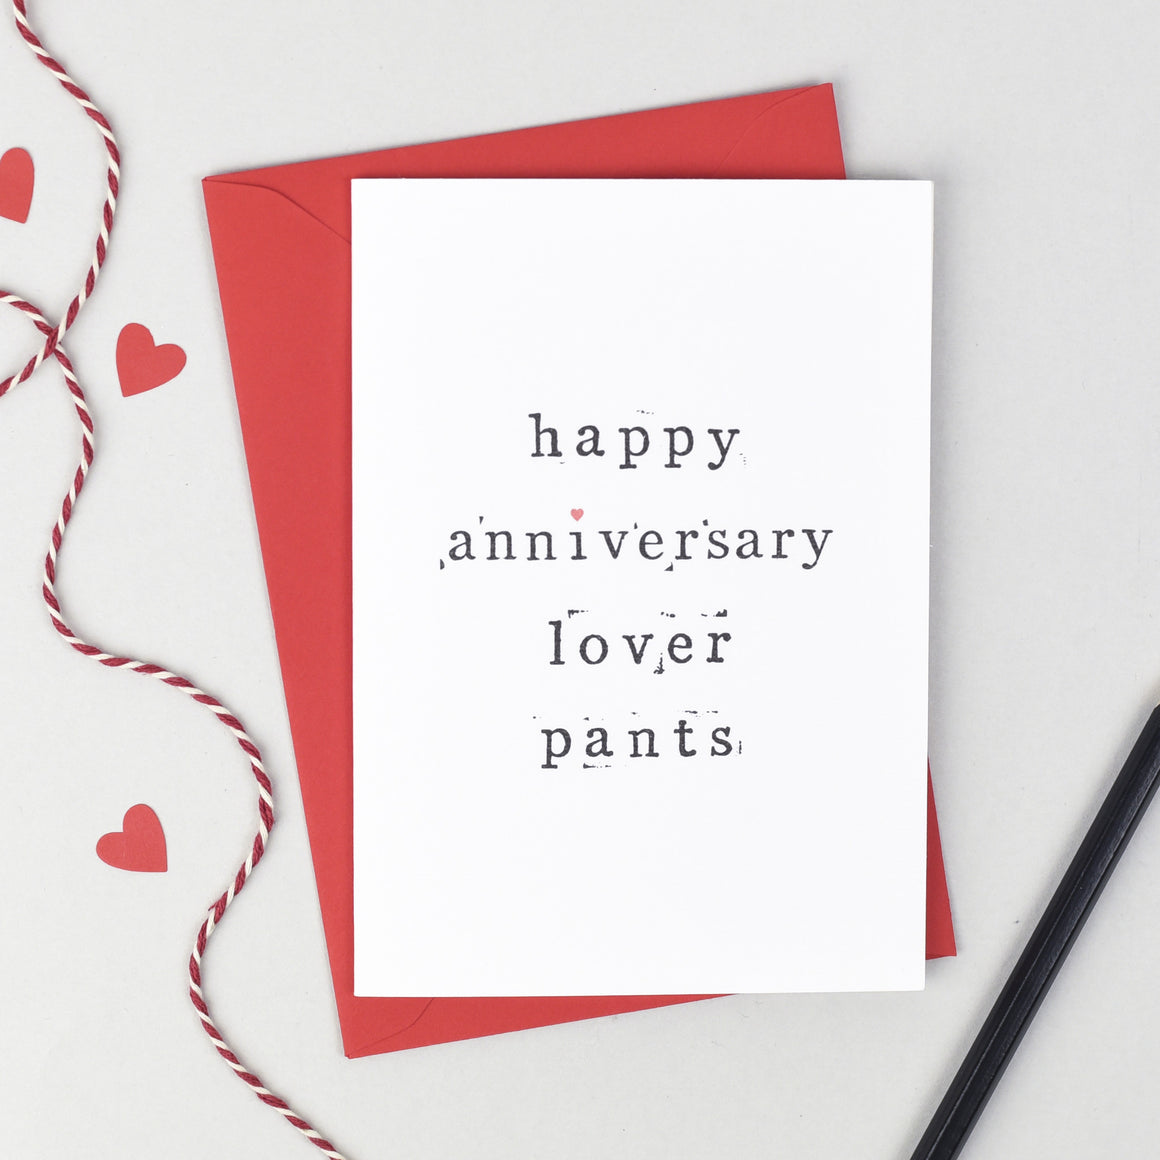 Happy Anniversary Lover Pants Card - The Two Wagtails